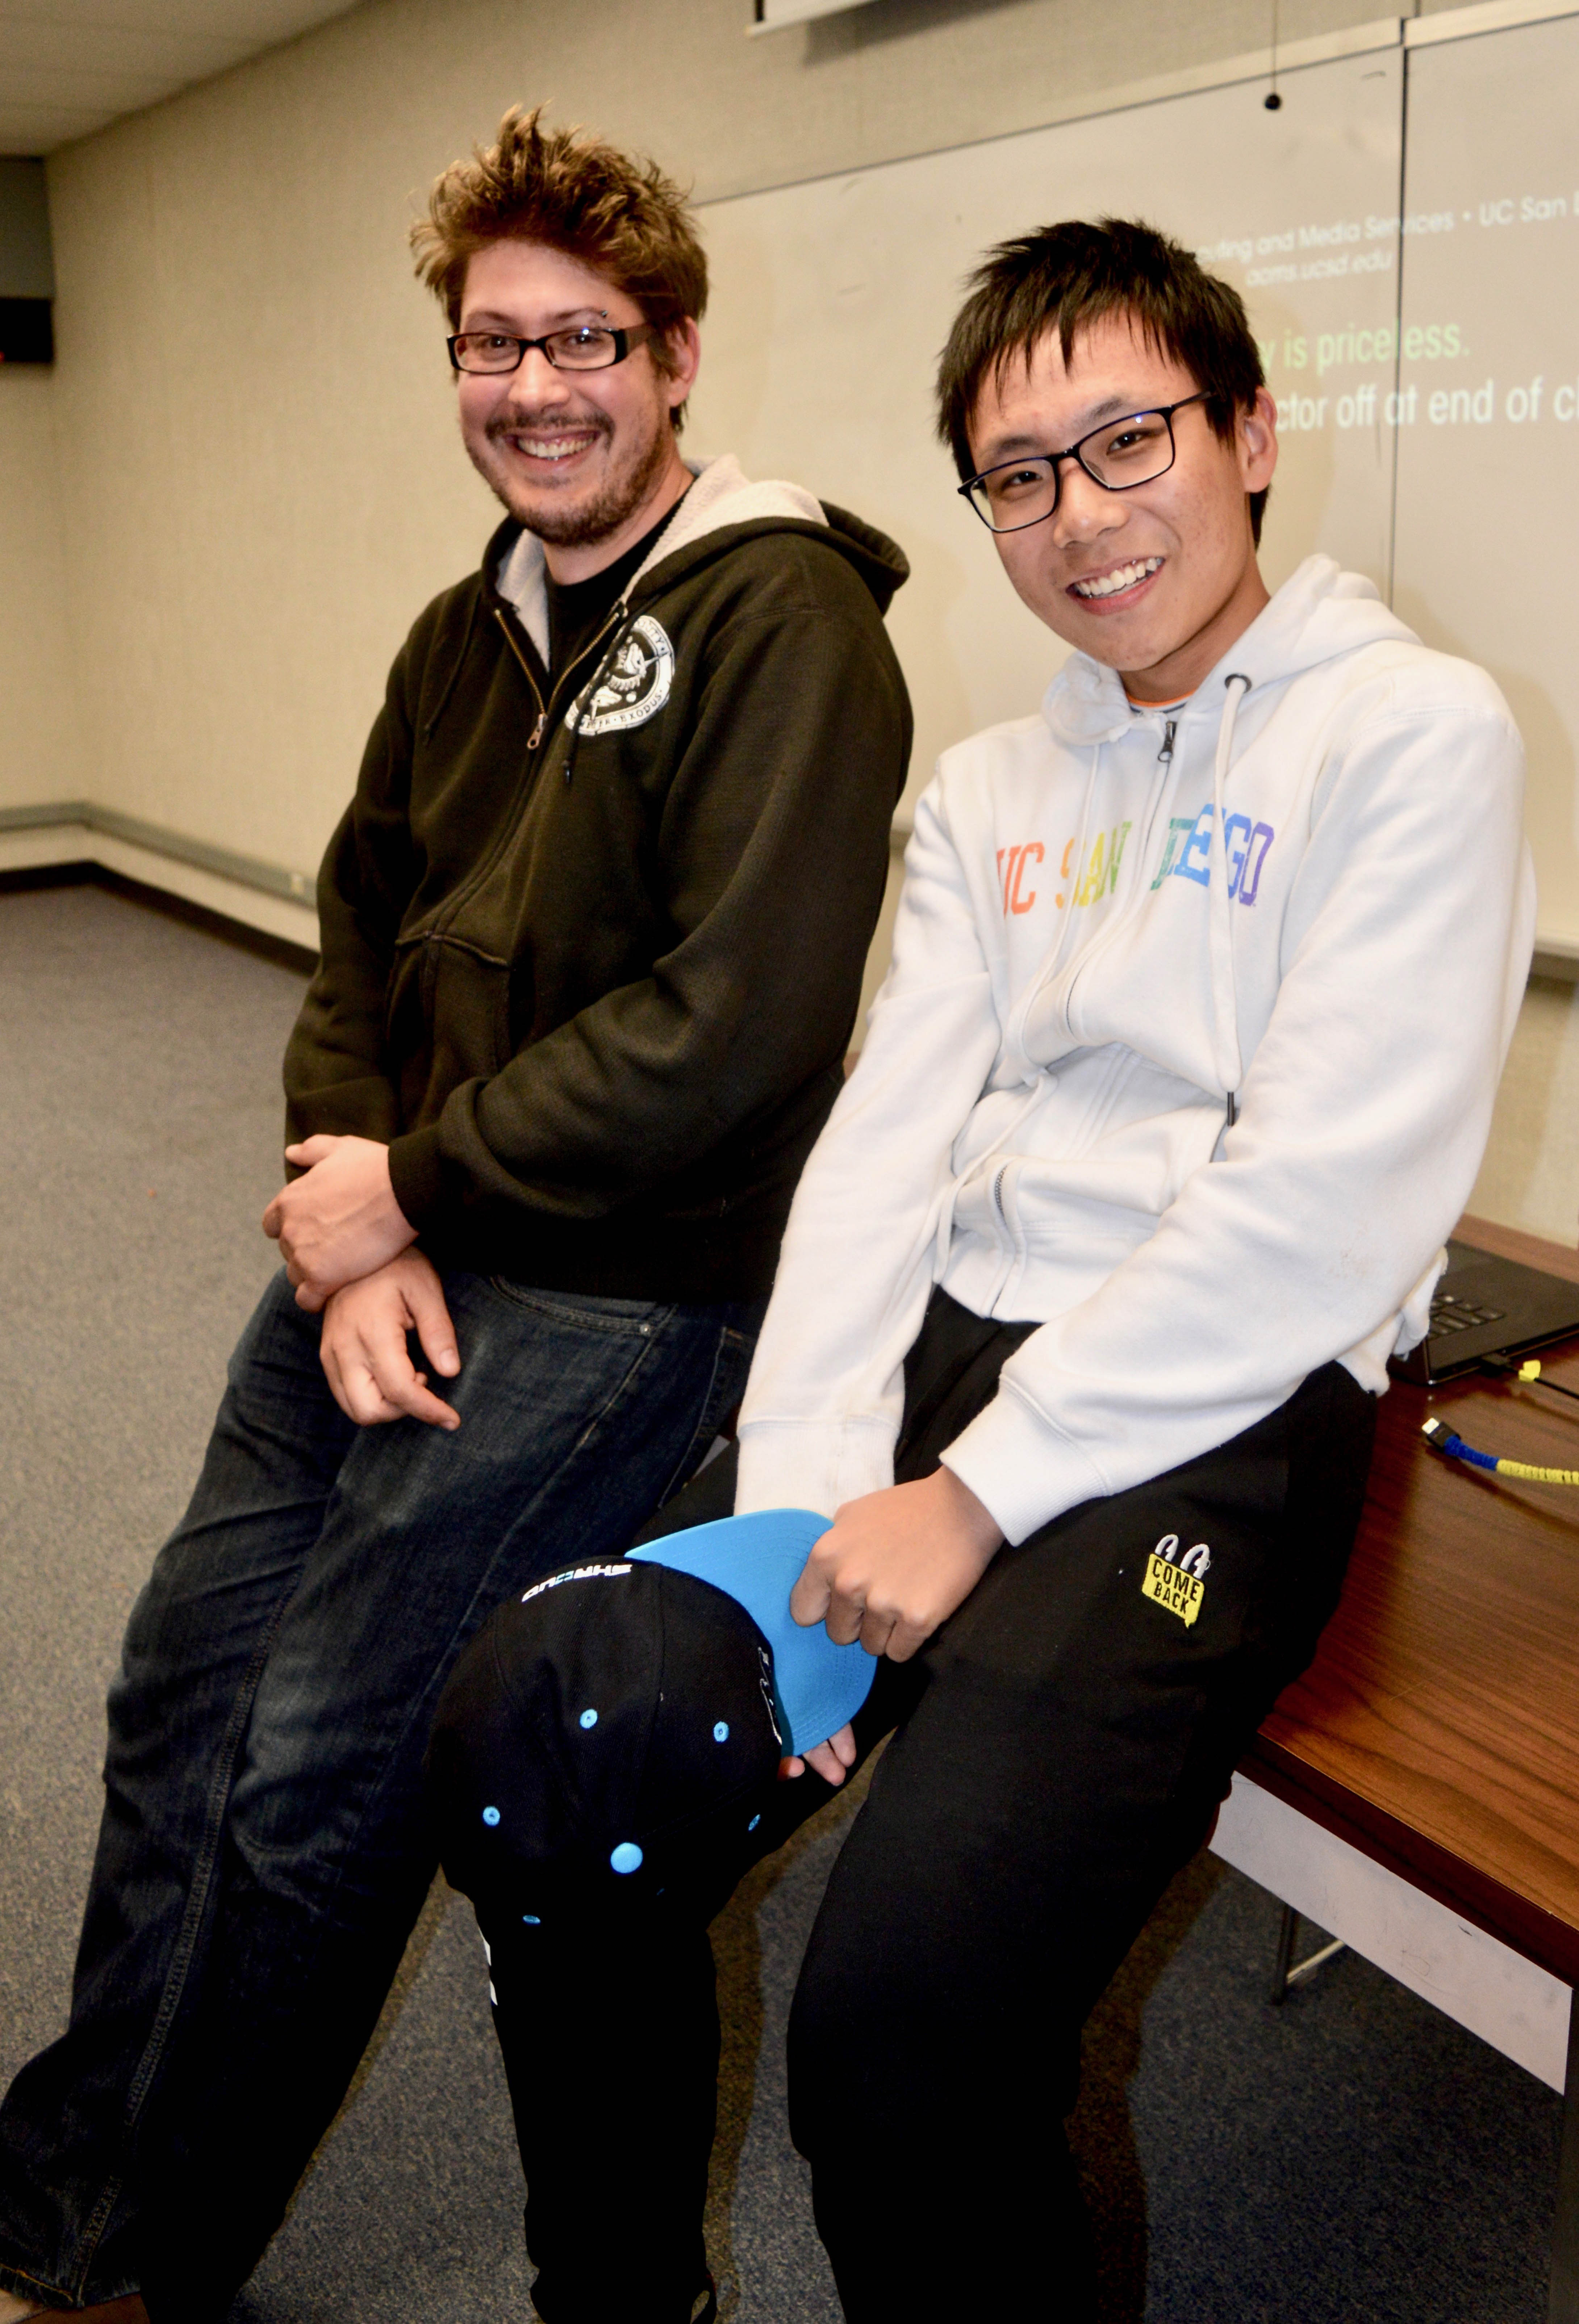 Freshman Yuan Gao stands at right. He is a Data Science major at UC San Diego, in class with instructor Colin Jemmott, who helped him create his first cloud.